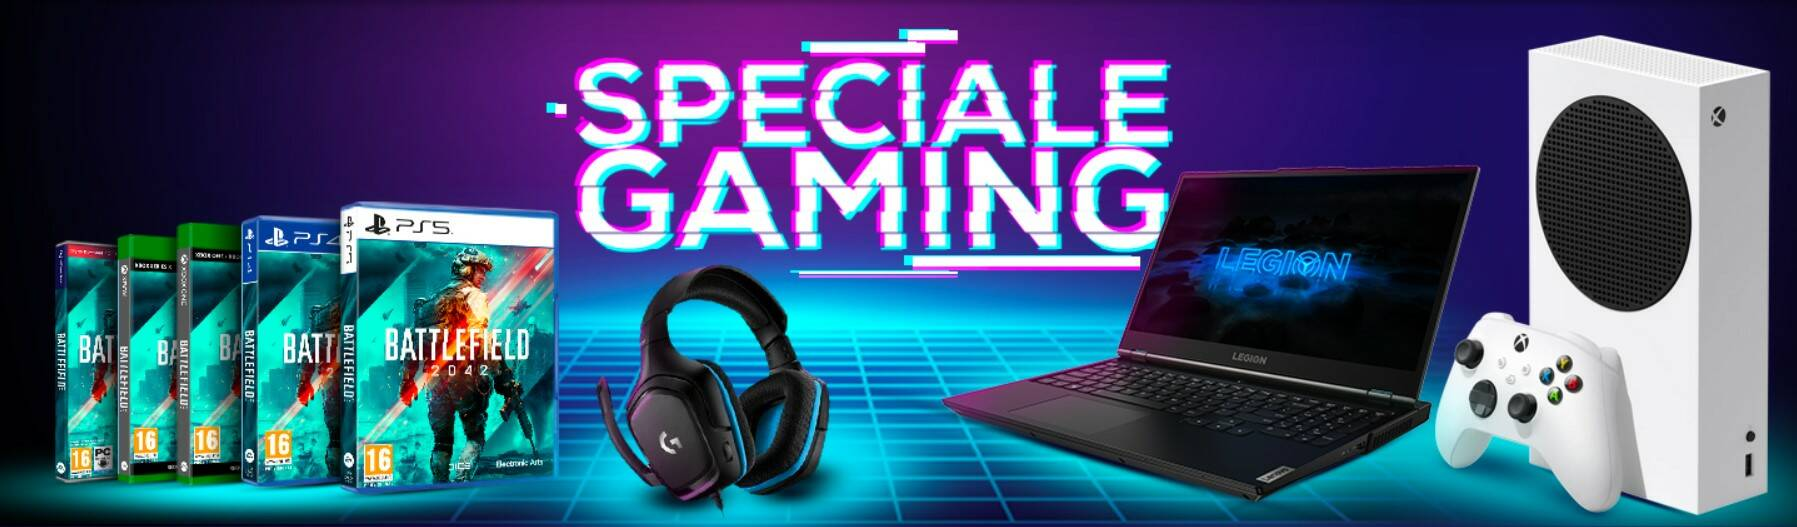 speciale_gaming_euronics